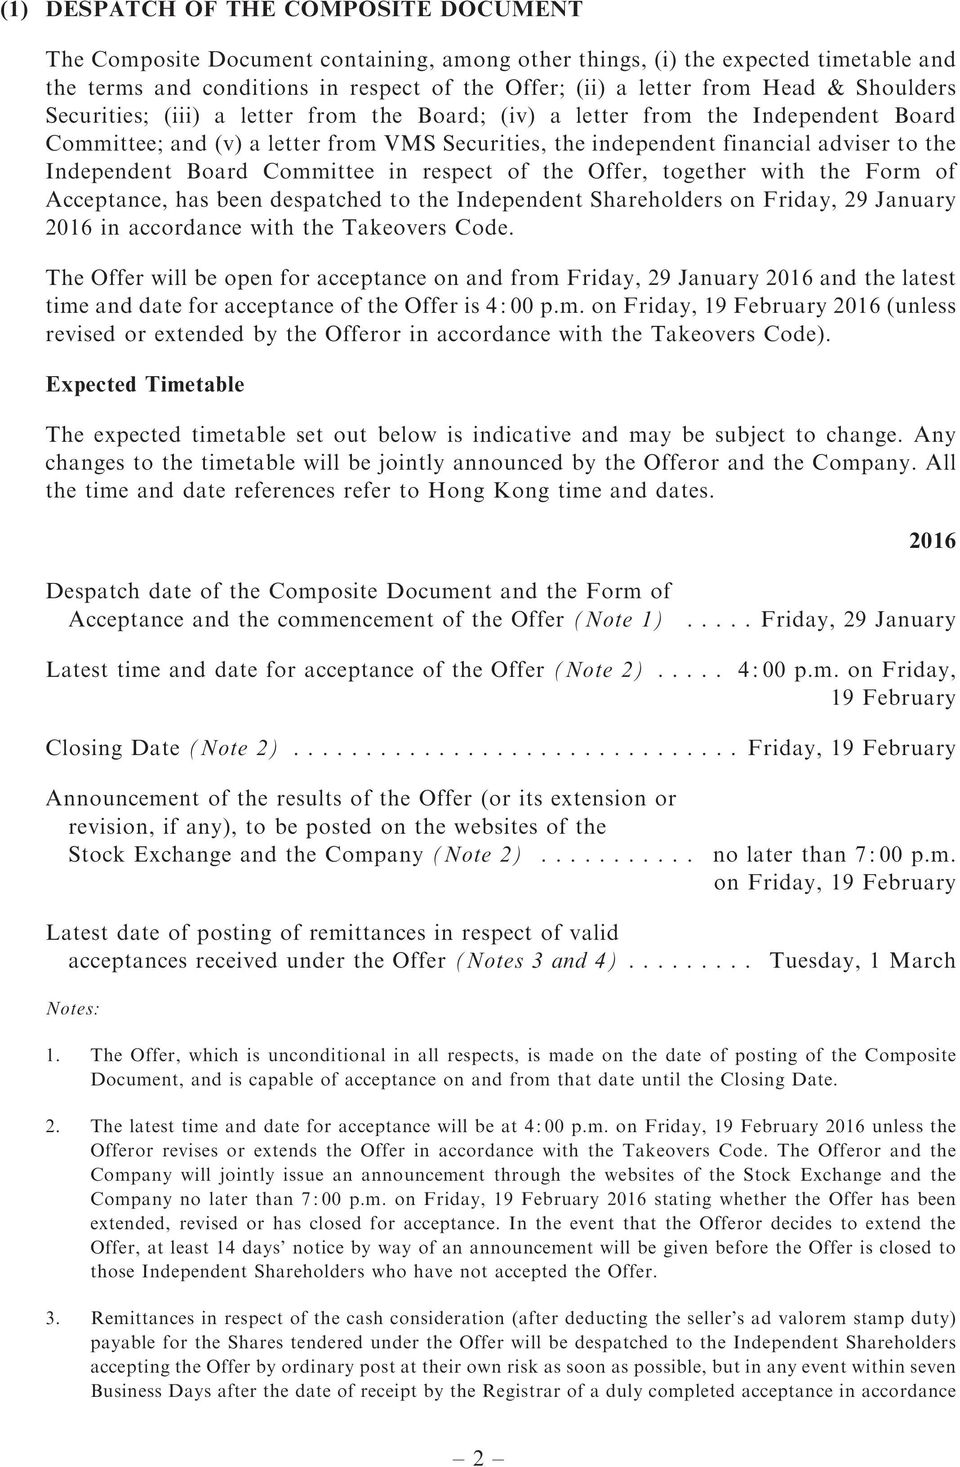 Board Committee in respect of the Offer, together with the Form of Acceptance, has been despatched to the Independent Shareholders on Friday, 29 January 2016 in accordance with the Takeovers Code.